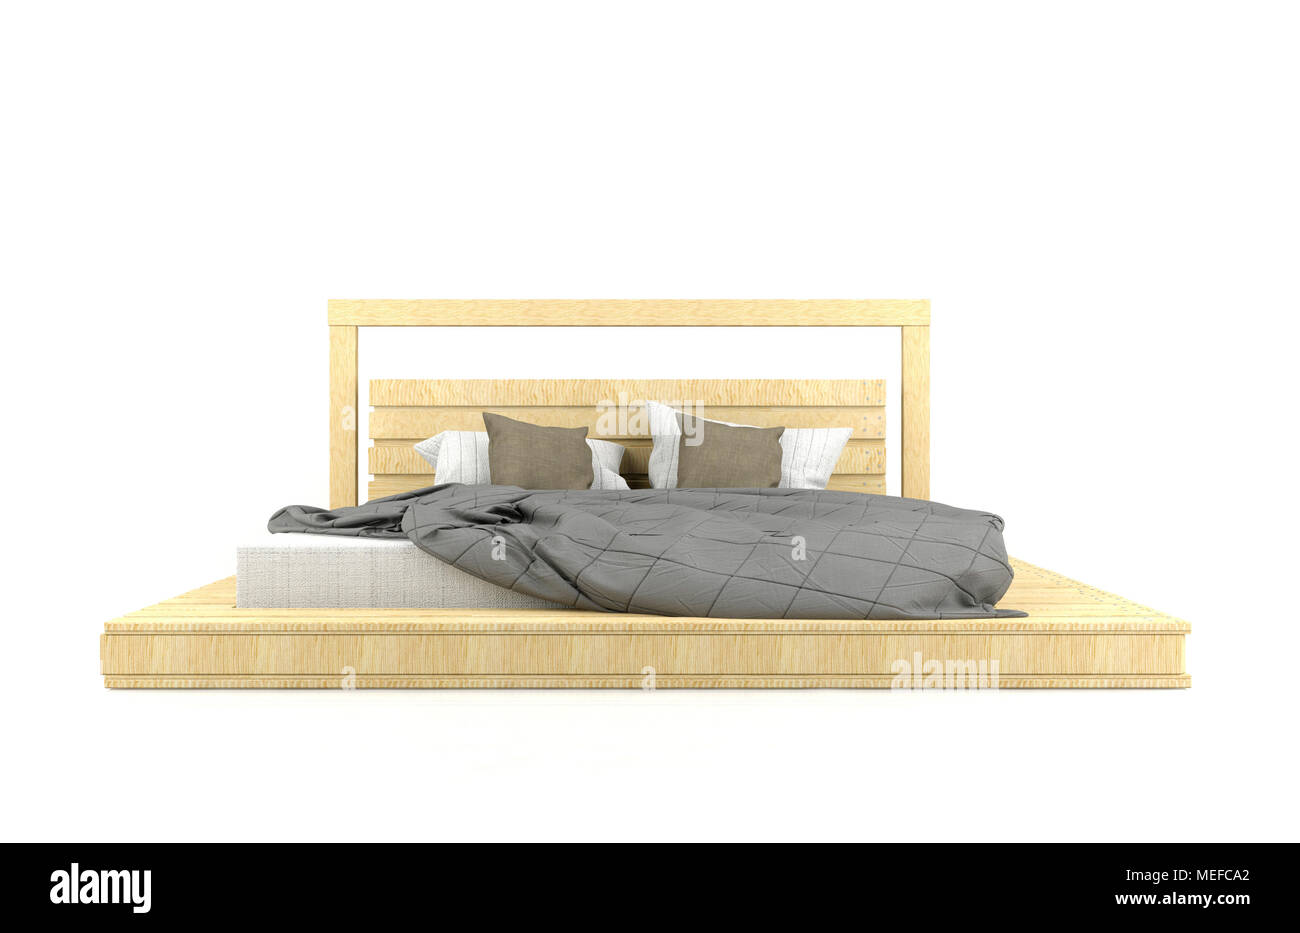 Modern and Loft design wooden bed isolated on white background - Stock Image